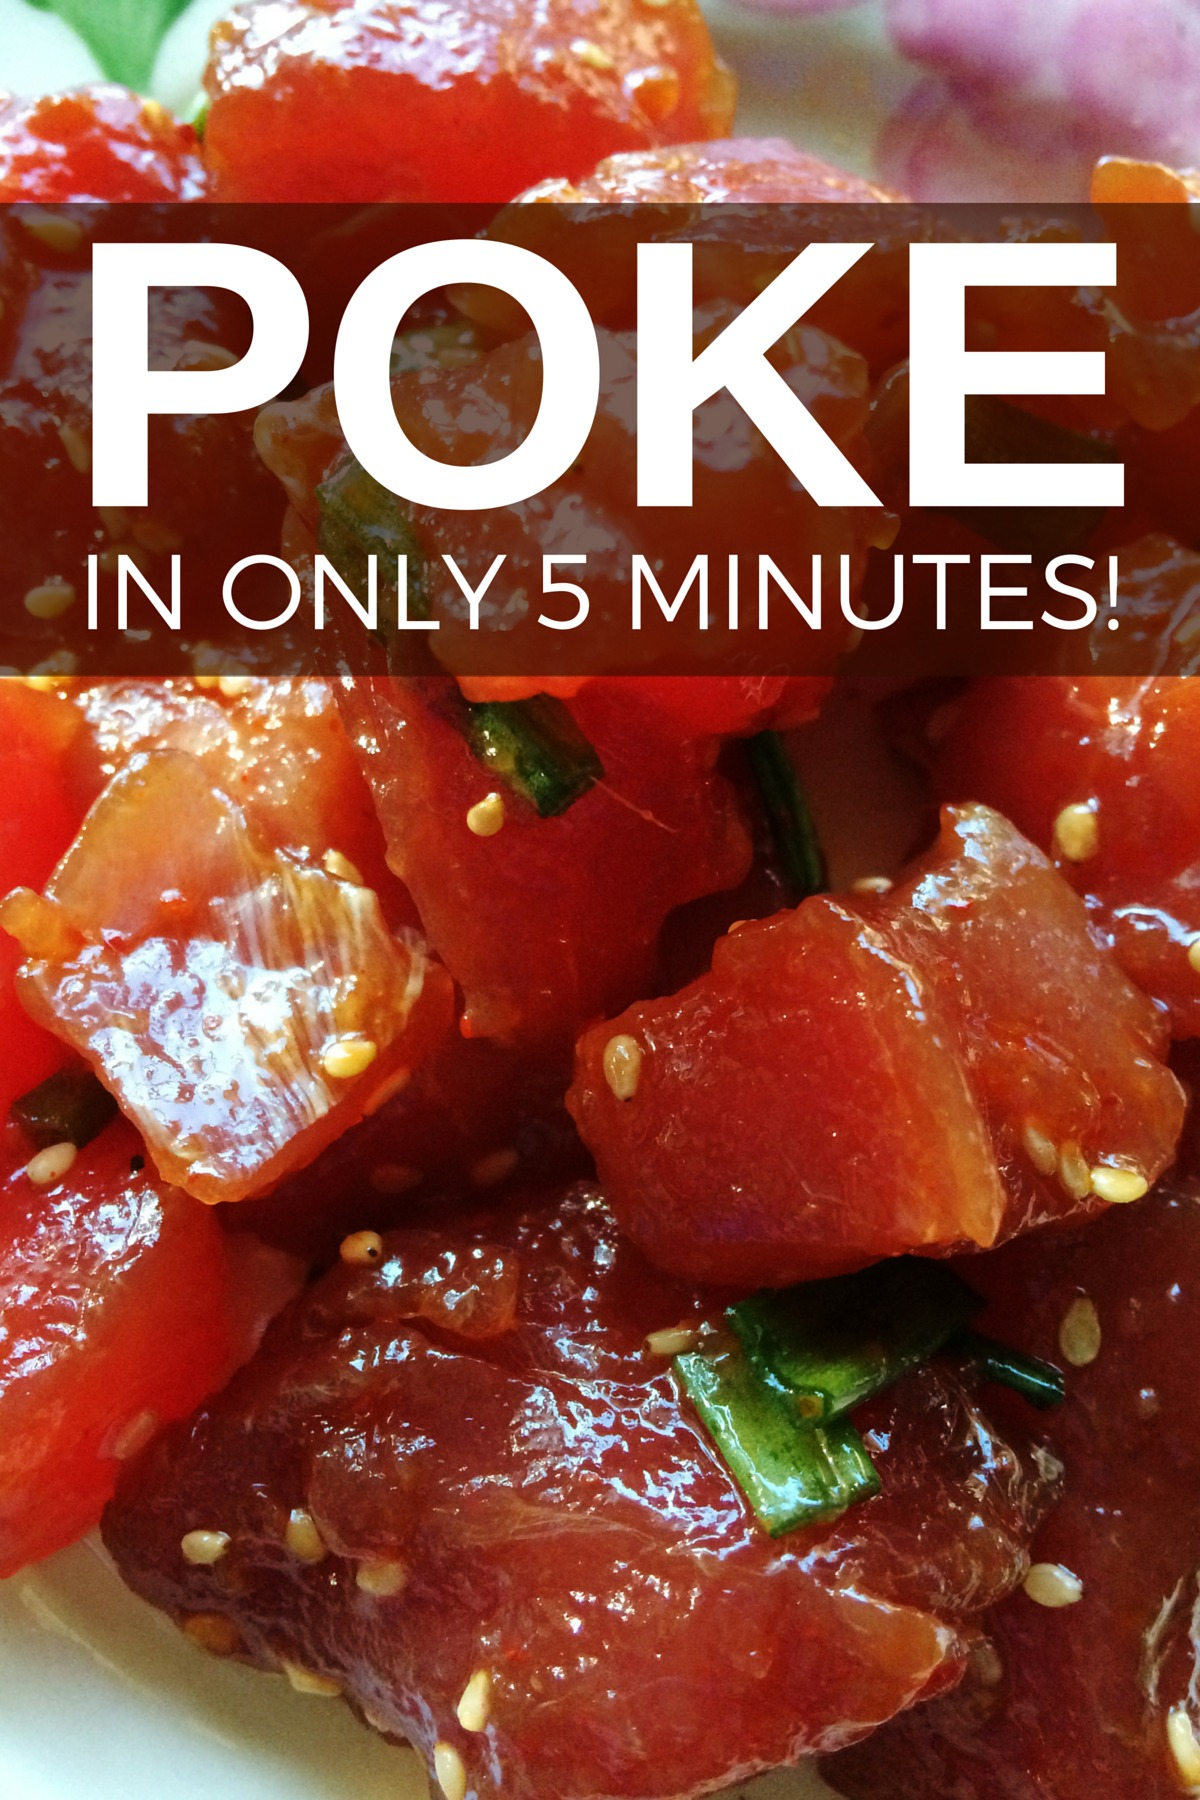 This Hawaiian poke recipe takes only 5 minutes to make. A super easy recipe, poke is found everywhere in Hawaii and so healthy and gluten-free.